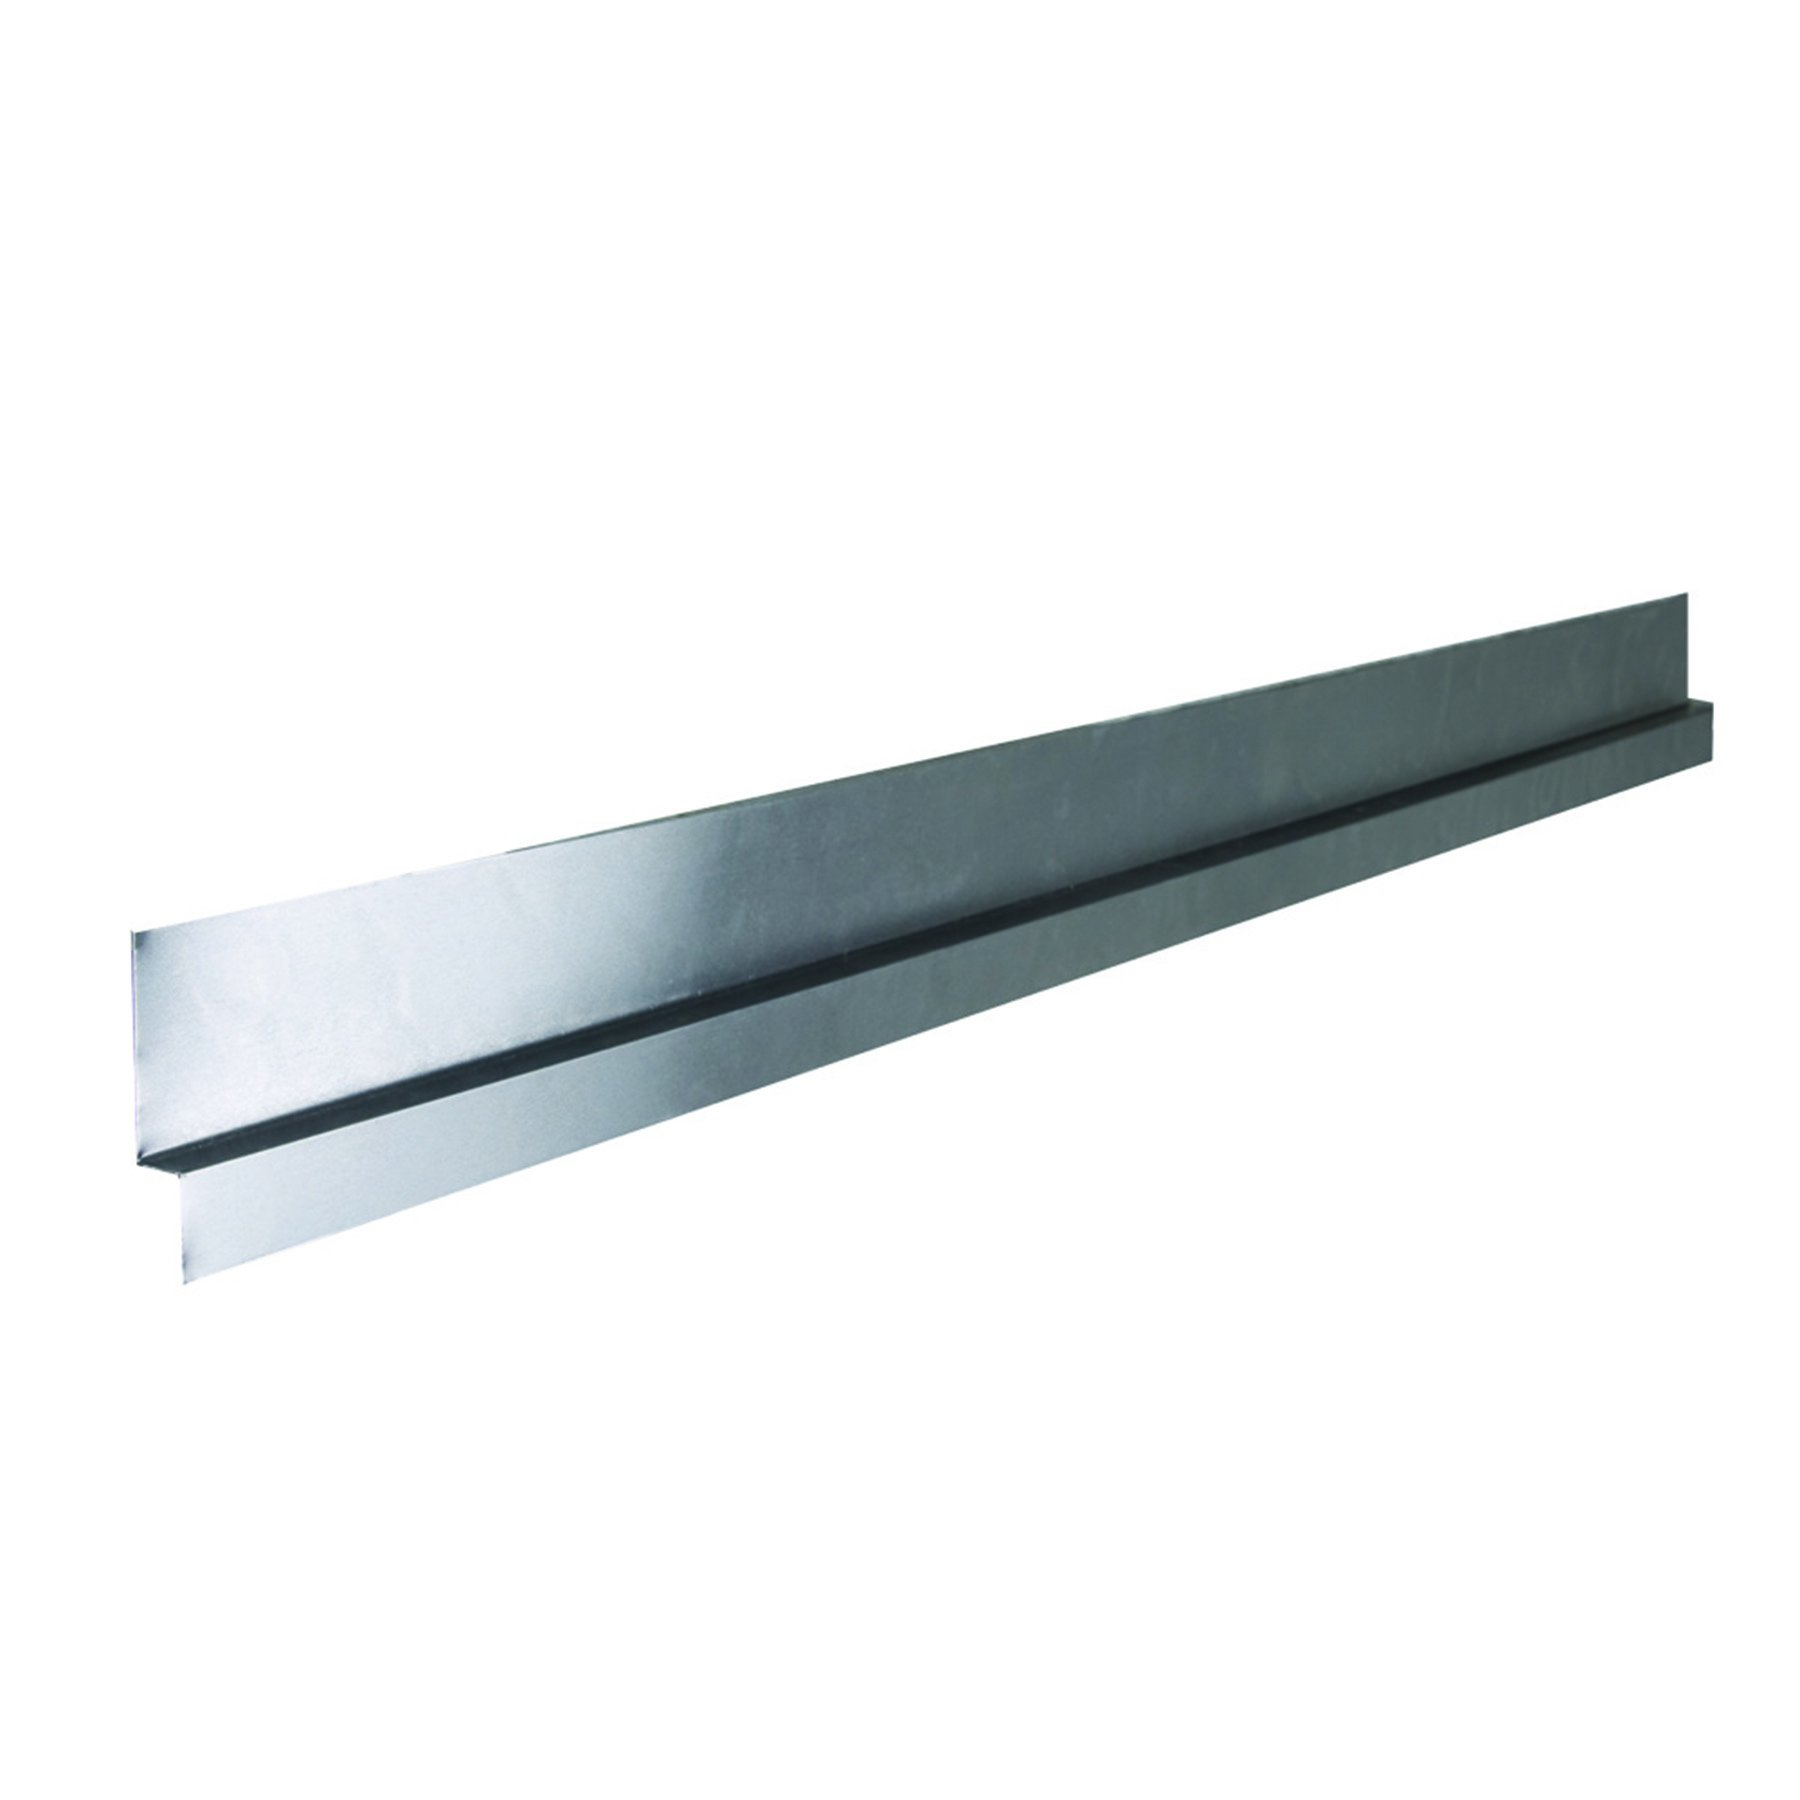 Tile Redi USA TRZF3042-BI Shower Flashing, Fits All Tile 30'' x 42'' Pans, Silver by Tile Redi USA